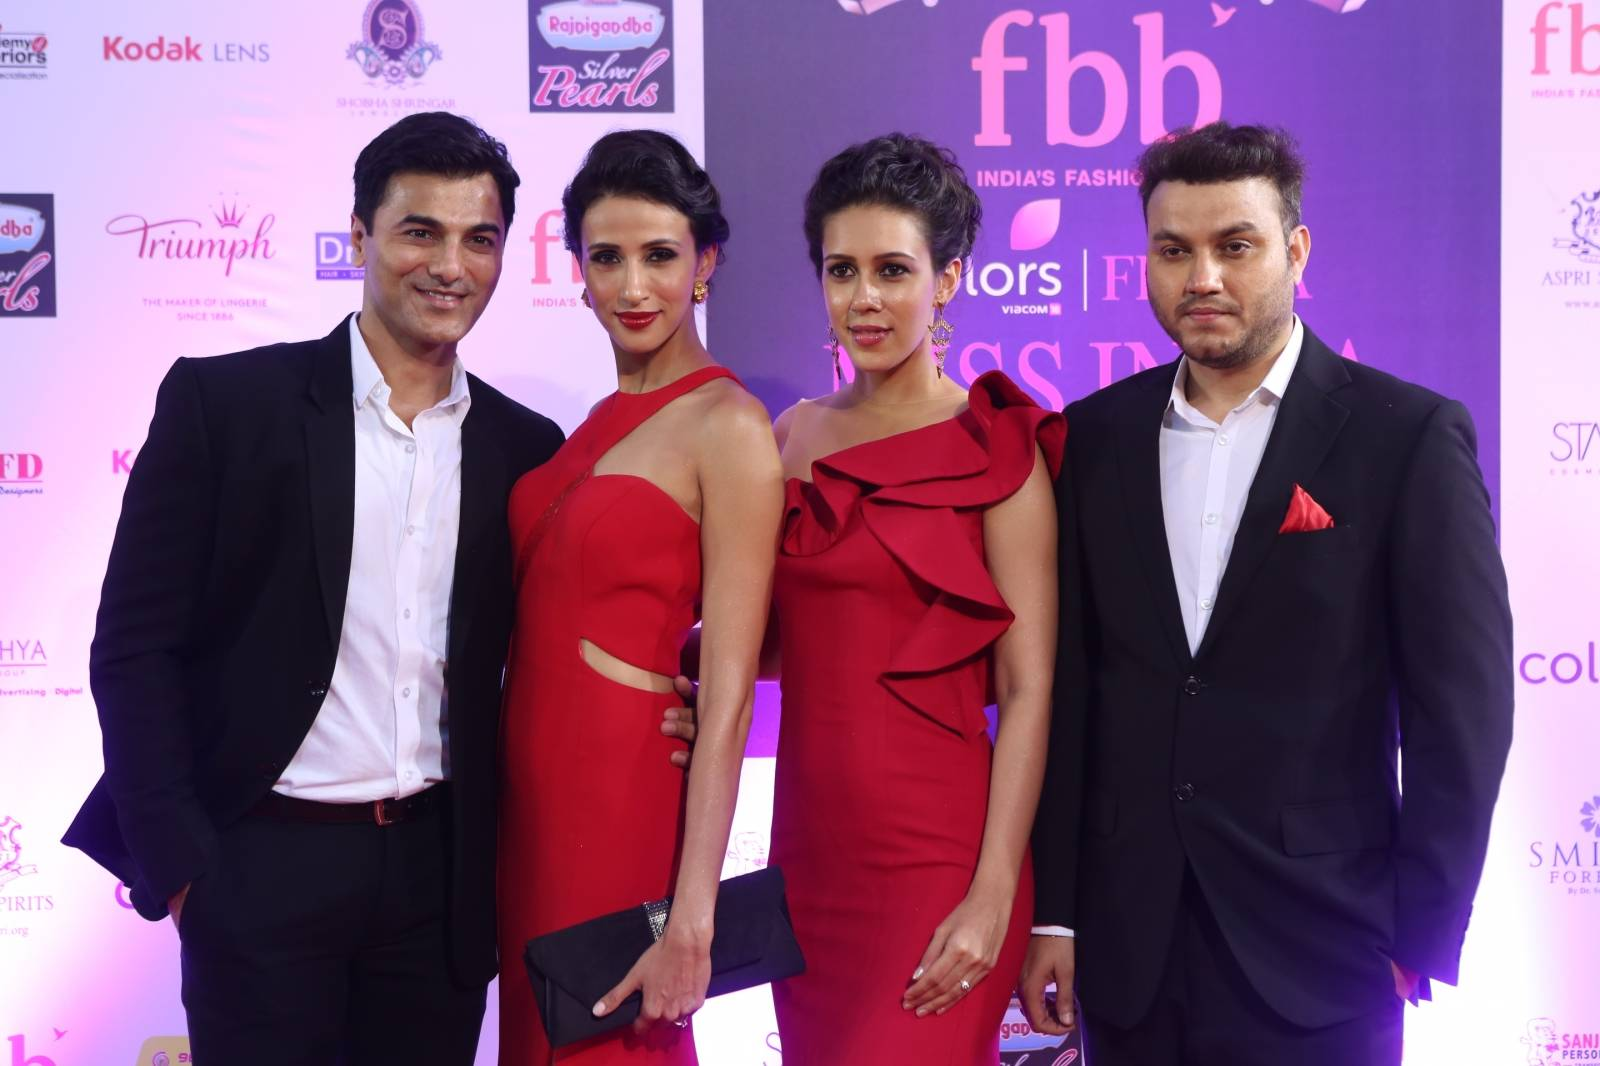 You definitely can't afford to miss these moments on 'Fbb Femina Miss India' this weekend.